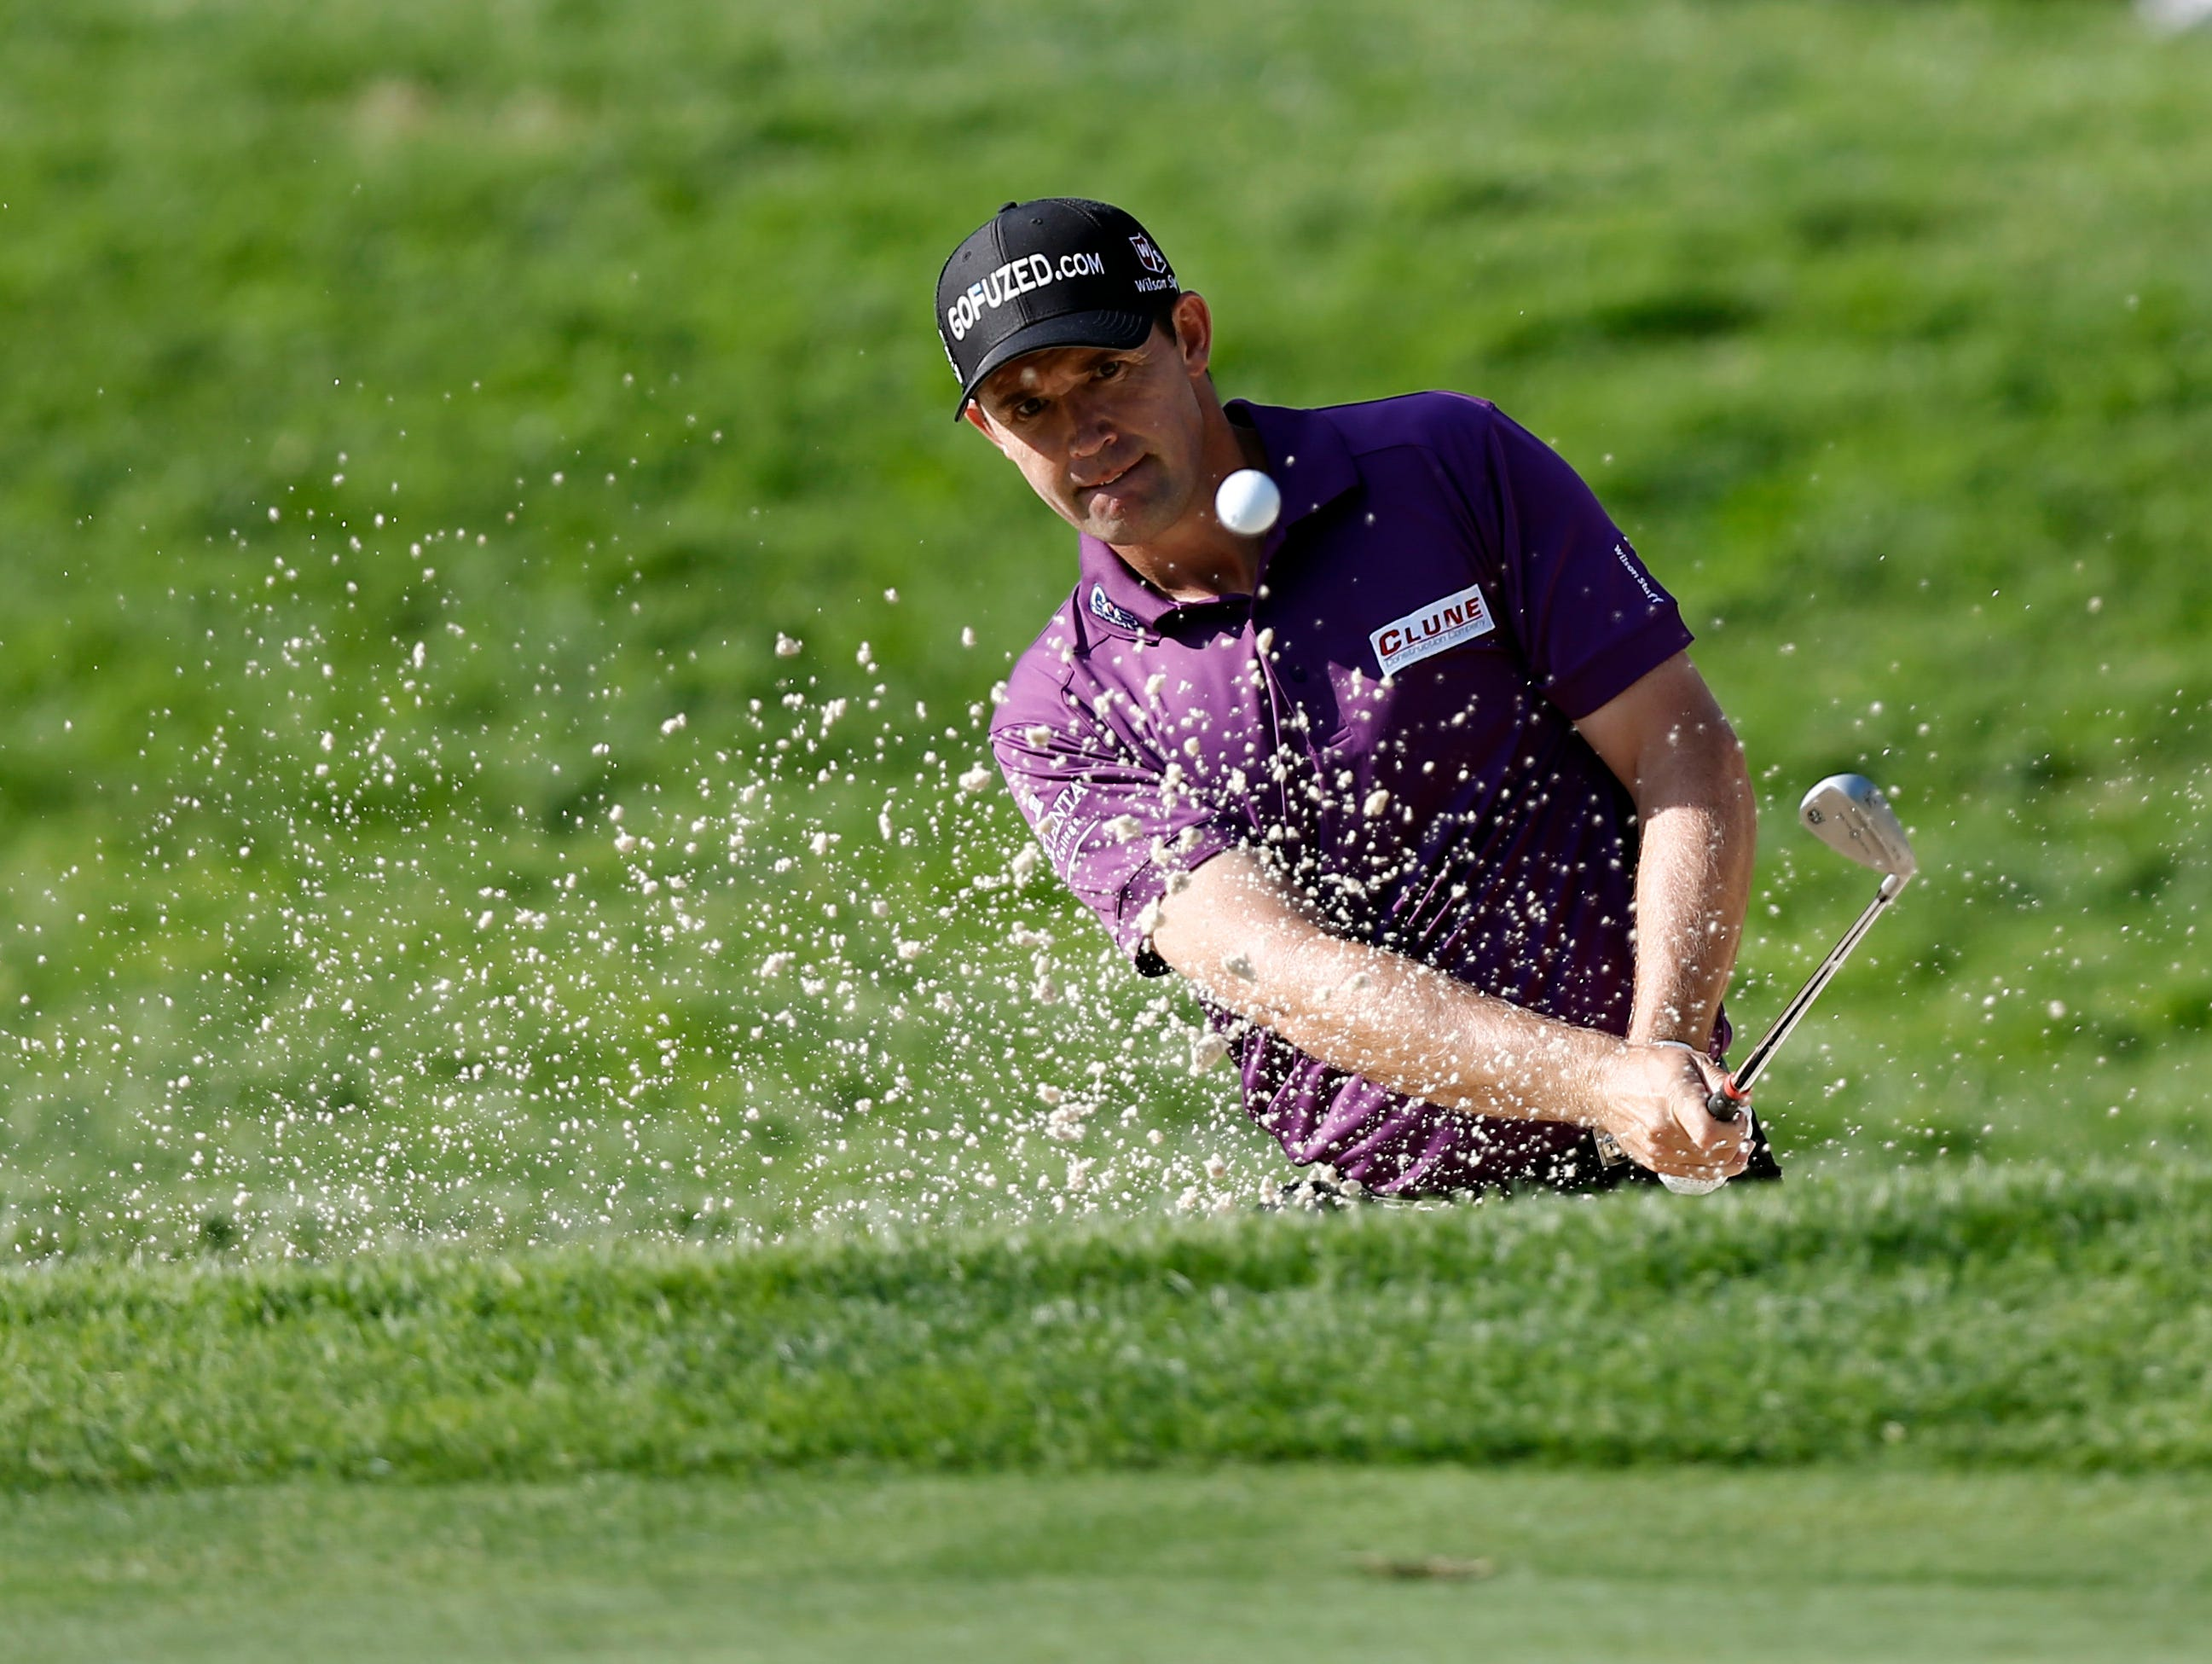 Padraig Harrington plays out of a green side bunker on the 11th hole during the first round of the 95th PGA Championship at Oak Hill Country Club.